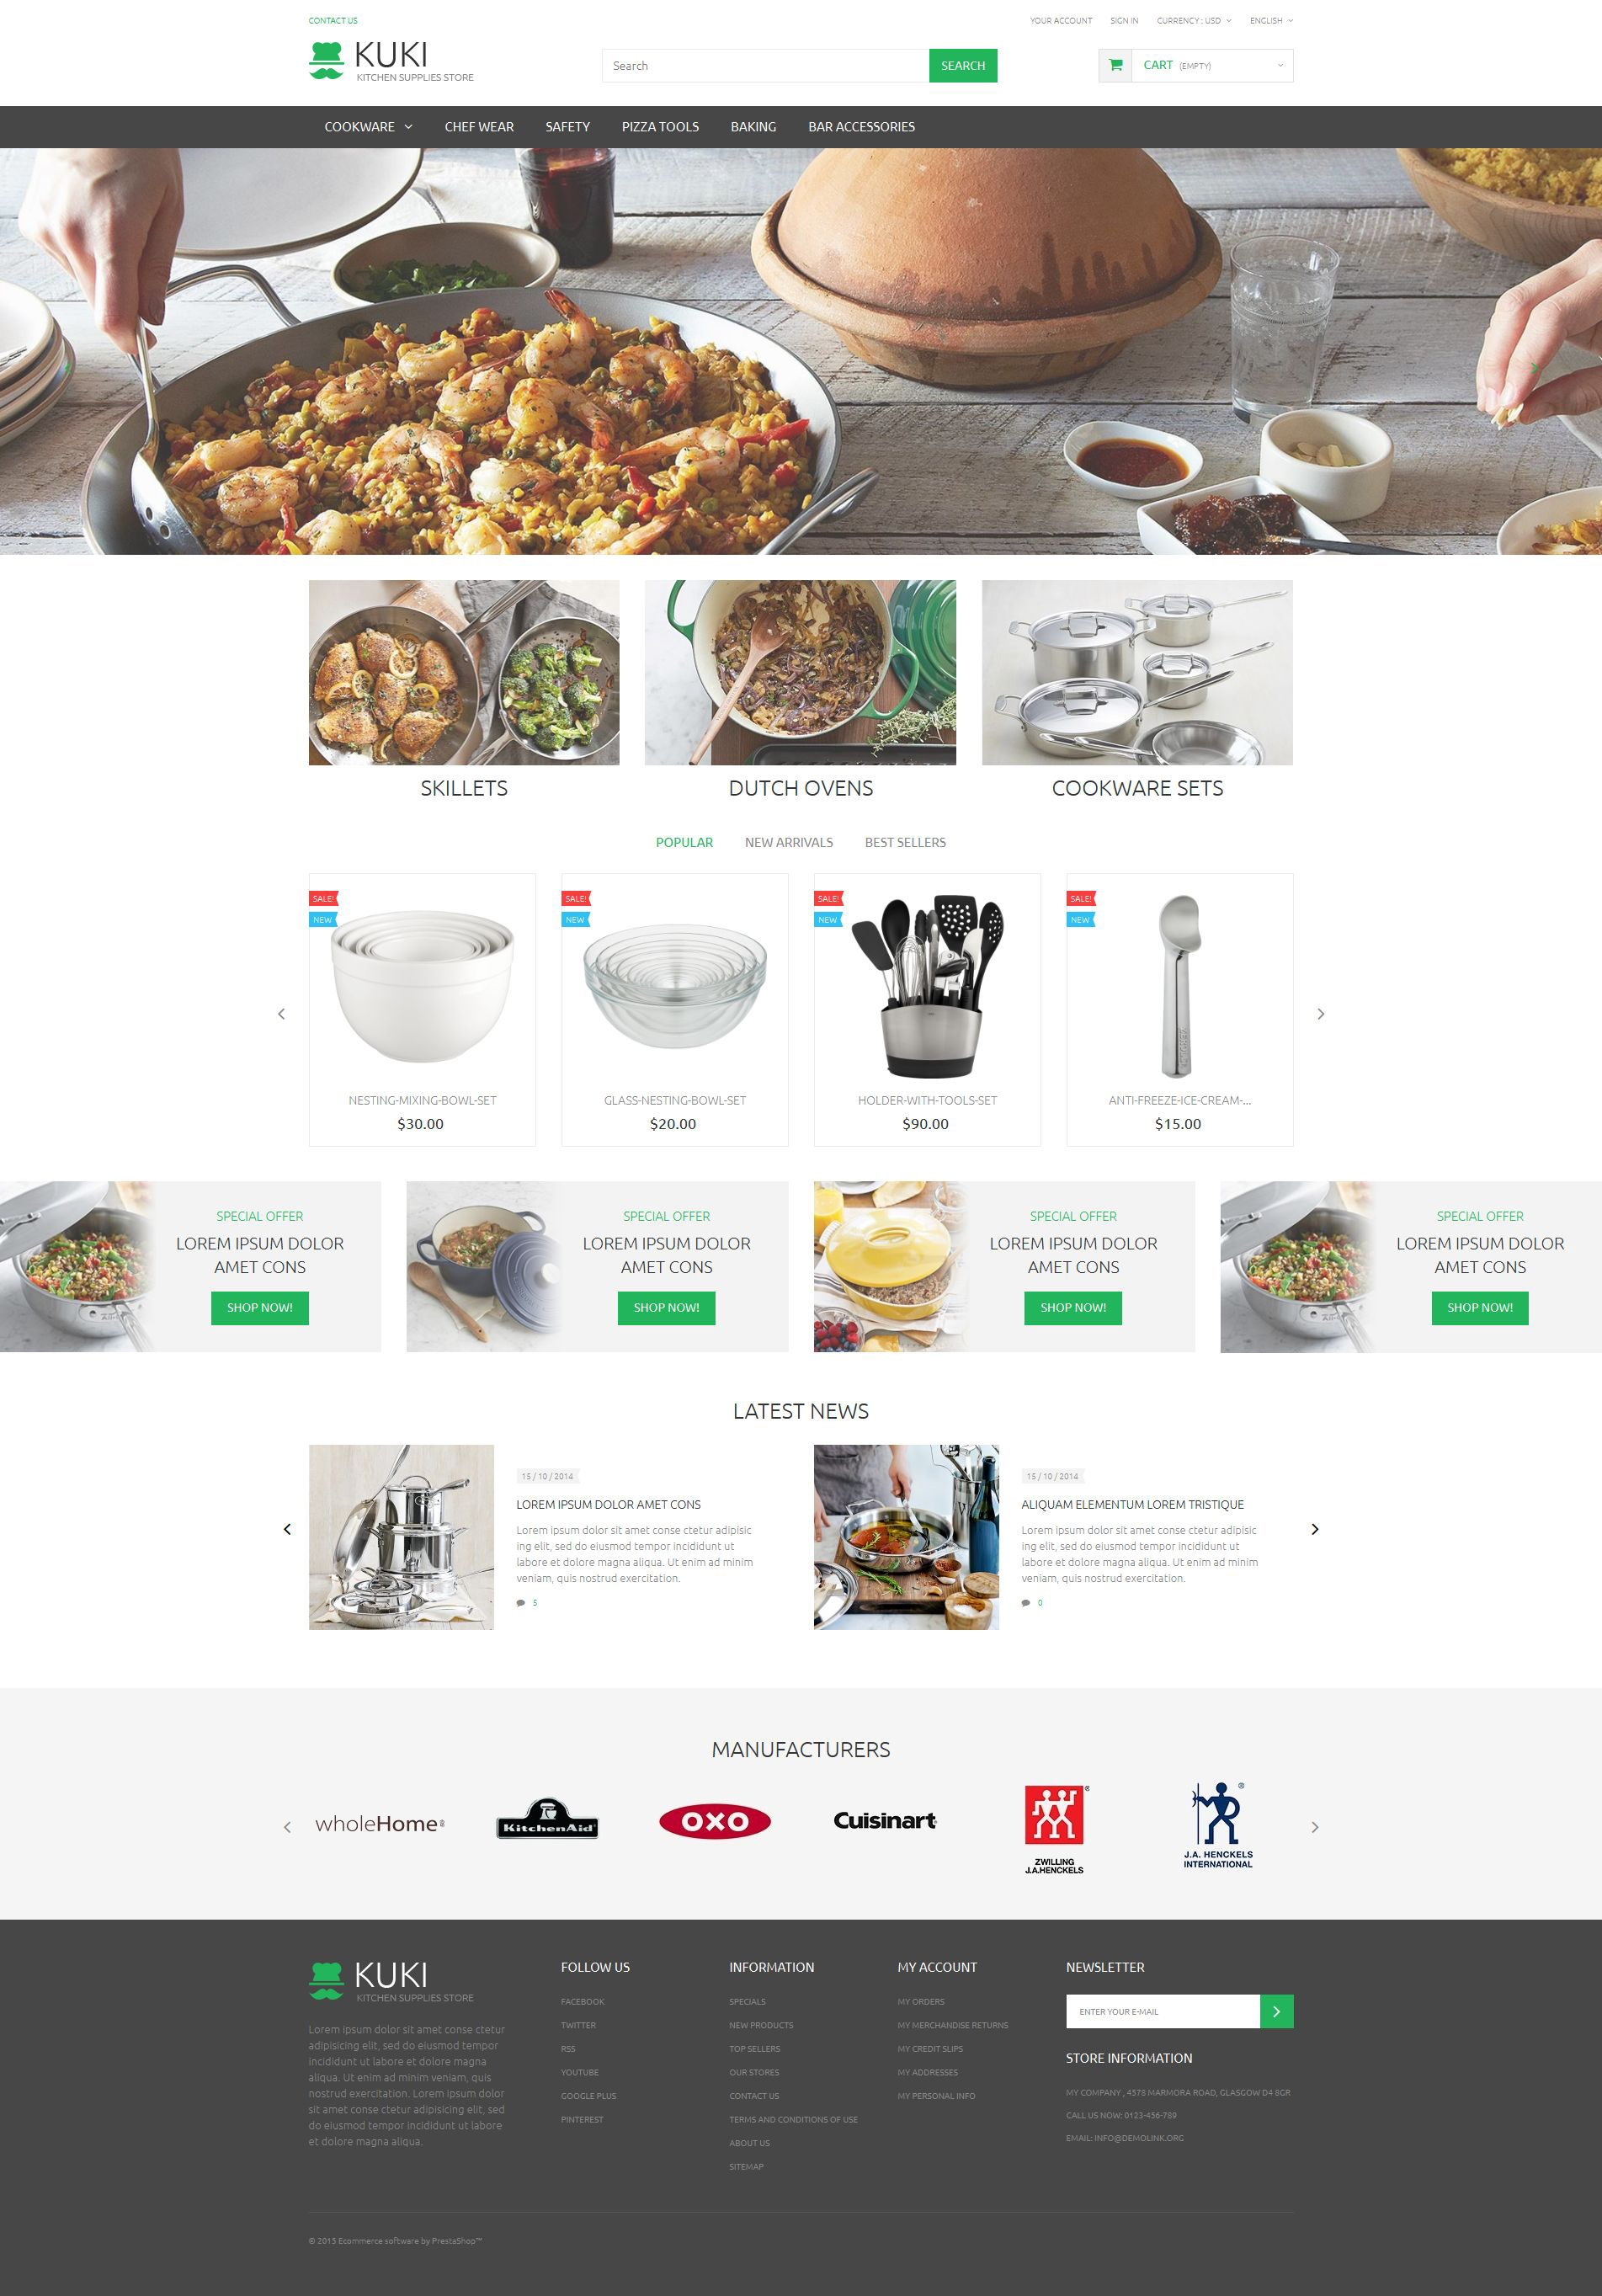 The Kuki Cheif PrestaShop Design 53429, one of the best PrestaShop themes of its kind (interior & furniture, most popular), also known as kuki cheif PrestaShop template, cook PrestaShop template, cookware PrestaShop template, kitchen PrestaShop template, supplies store PrestaShop template, glassware PrestaShop template, tableware PrestaShop template, the PrestaShop template, dishes PrestaShop template, tinware PrestaShop template, kitchen PrestaShop template, utensils PrestaShop template, tea PrestaShop template, things PrestaShop template, pottery PrestaShop template, dishware PrestaShop template, houseware PrestaShop template, plates PrestaShop template, dishes PrestaShop template, dinnerware PrestaShop template, kitchenware and related with kuki cheif, cook, cookware, kitchen, supplies store, glassware, tableware, the, dishes, tinware, kitchen, utensils, tea, things, pottery, dishware, houseware, plates, dishes, dinnerware, kitchenware, etc.